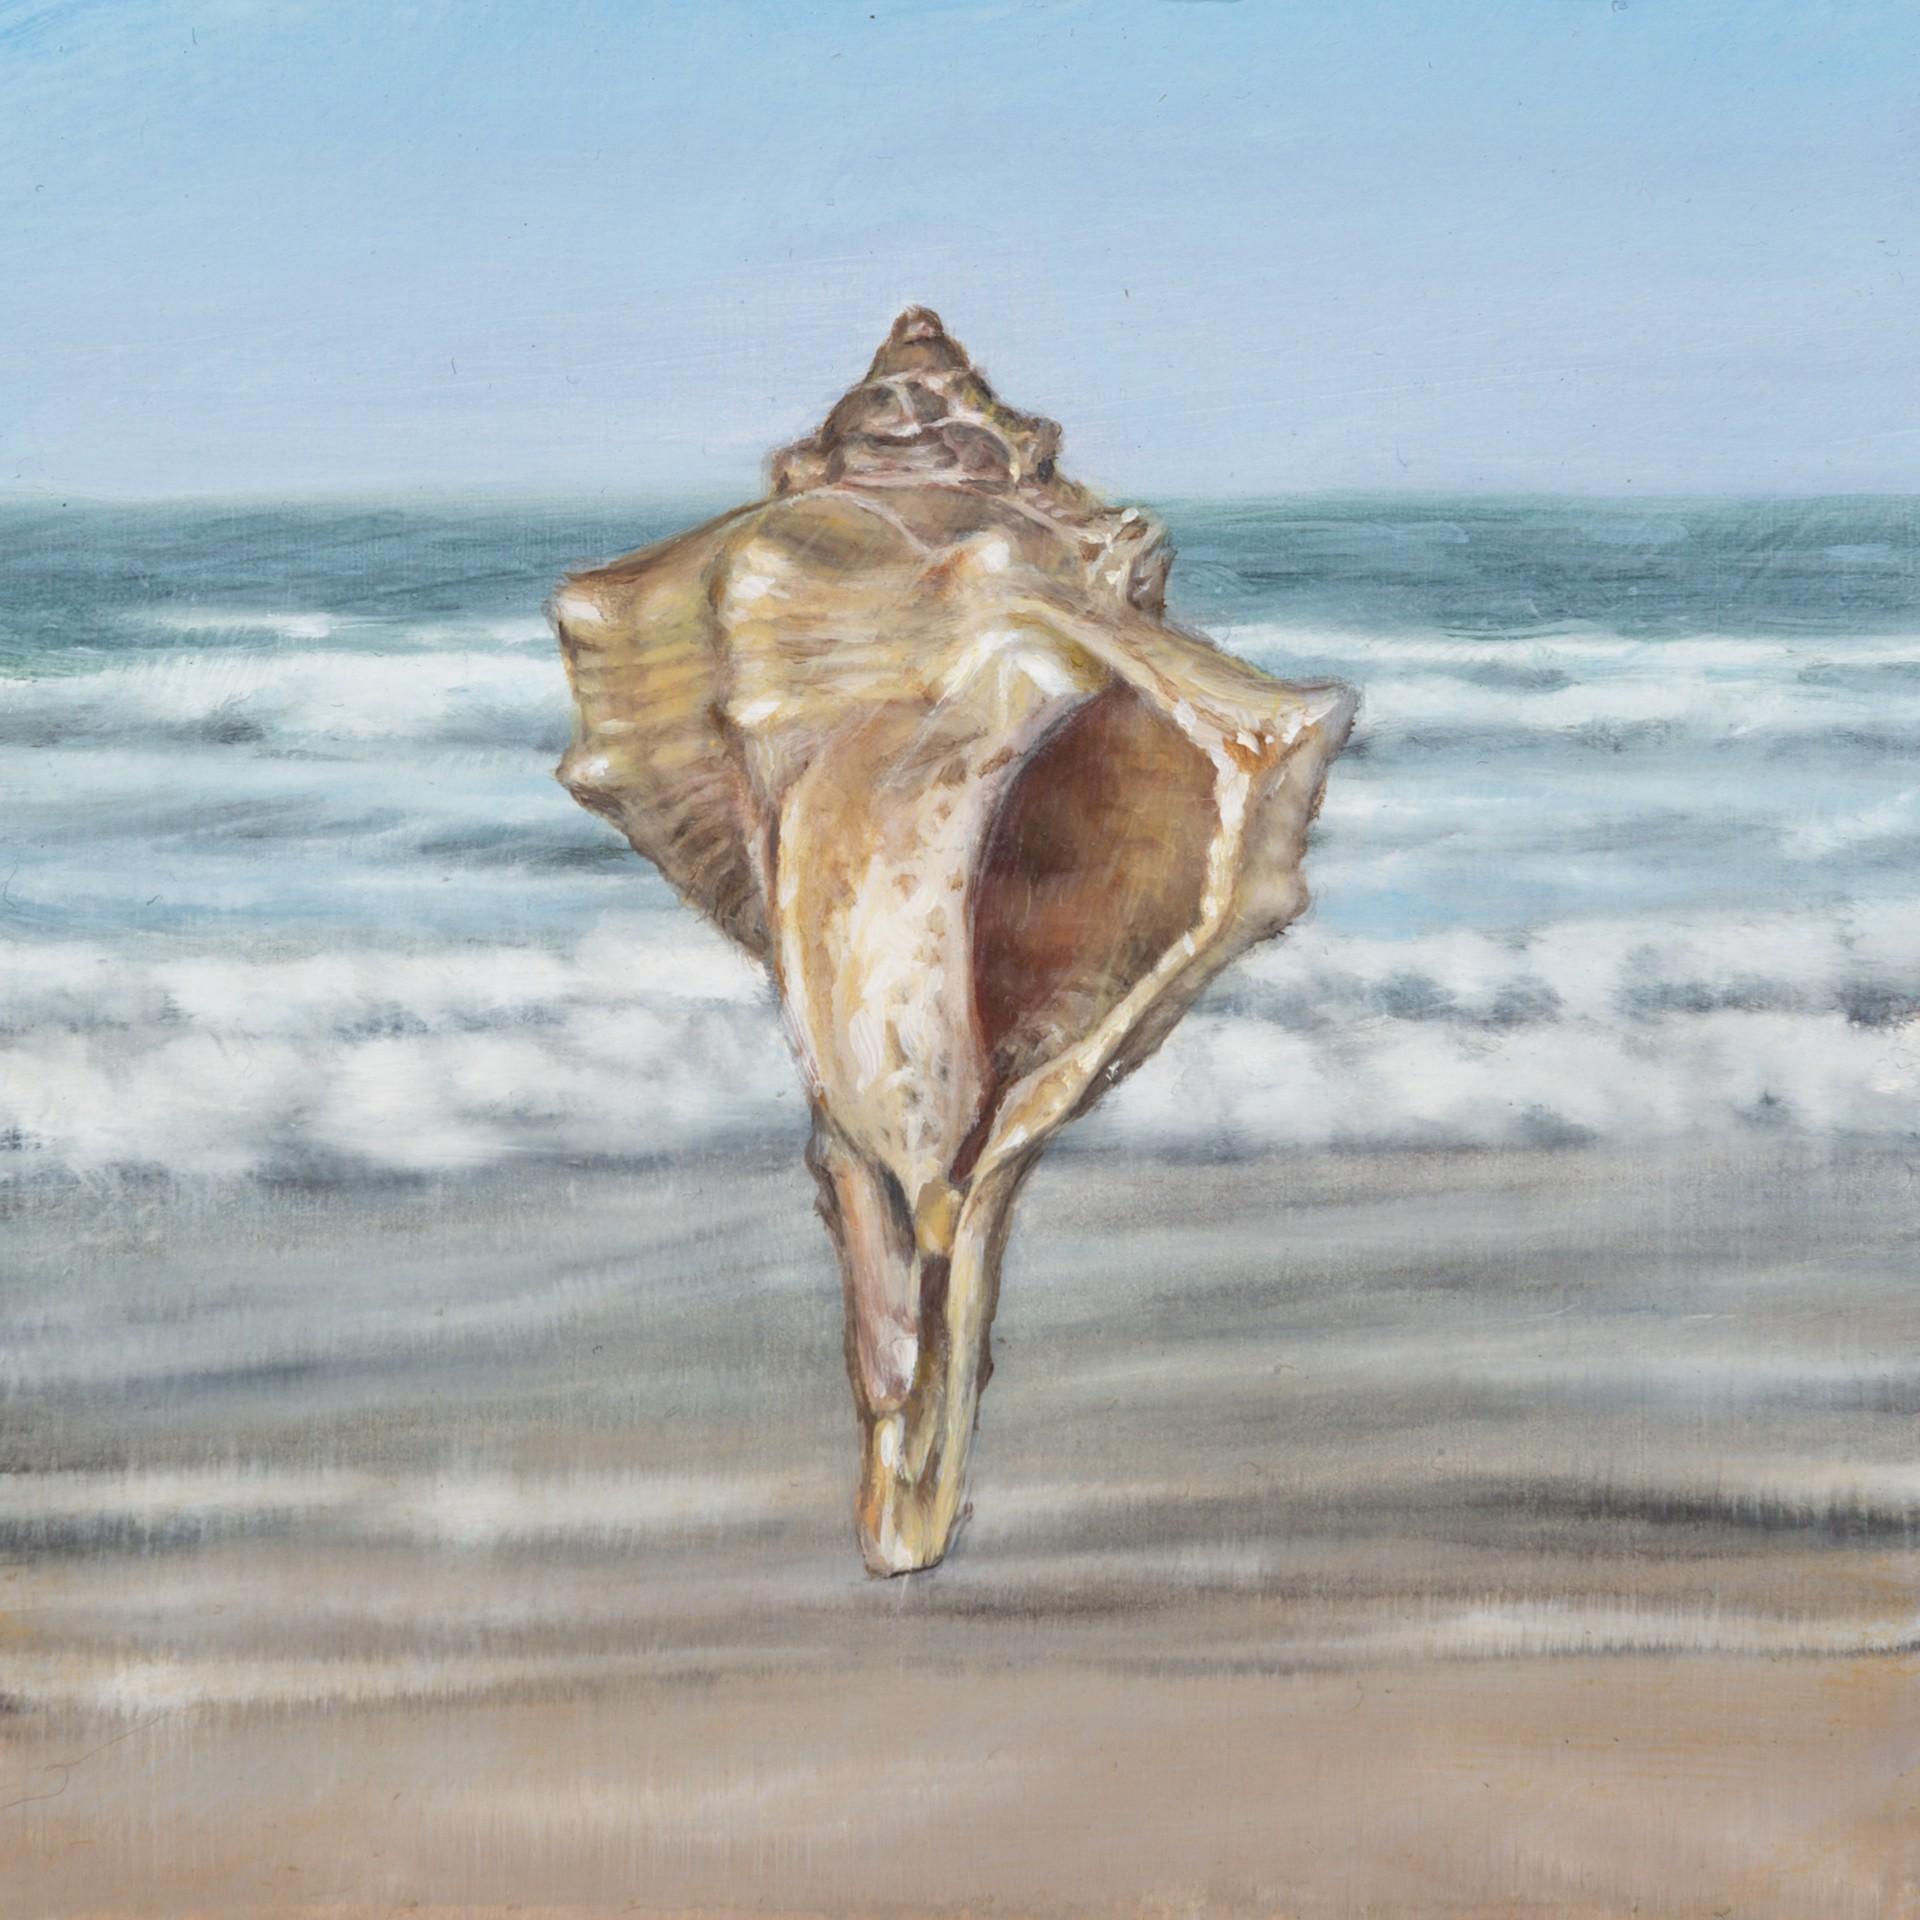 Shell 3 by Gregory Block